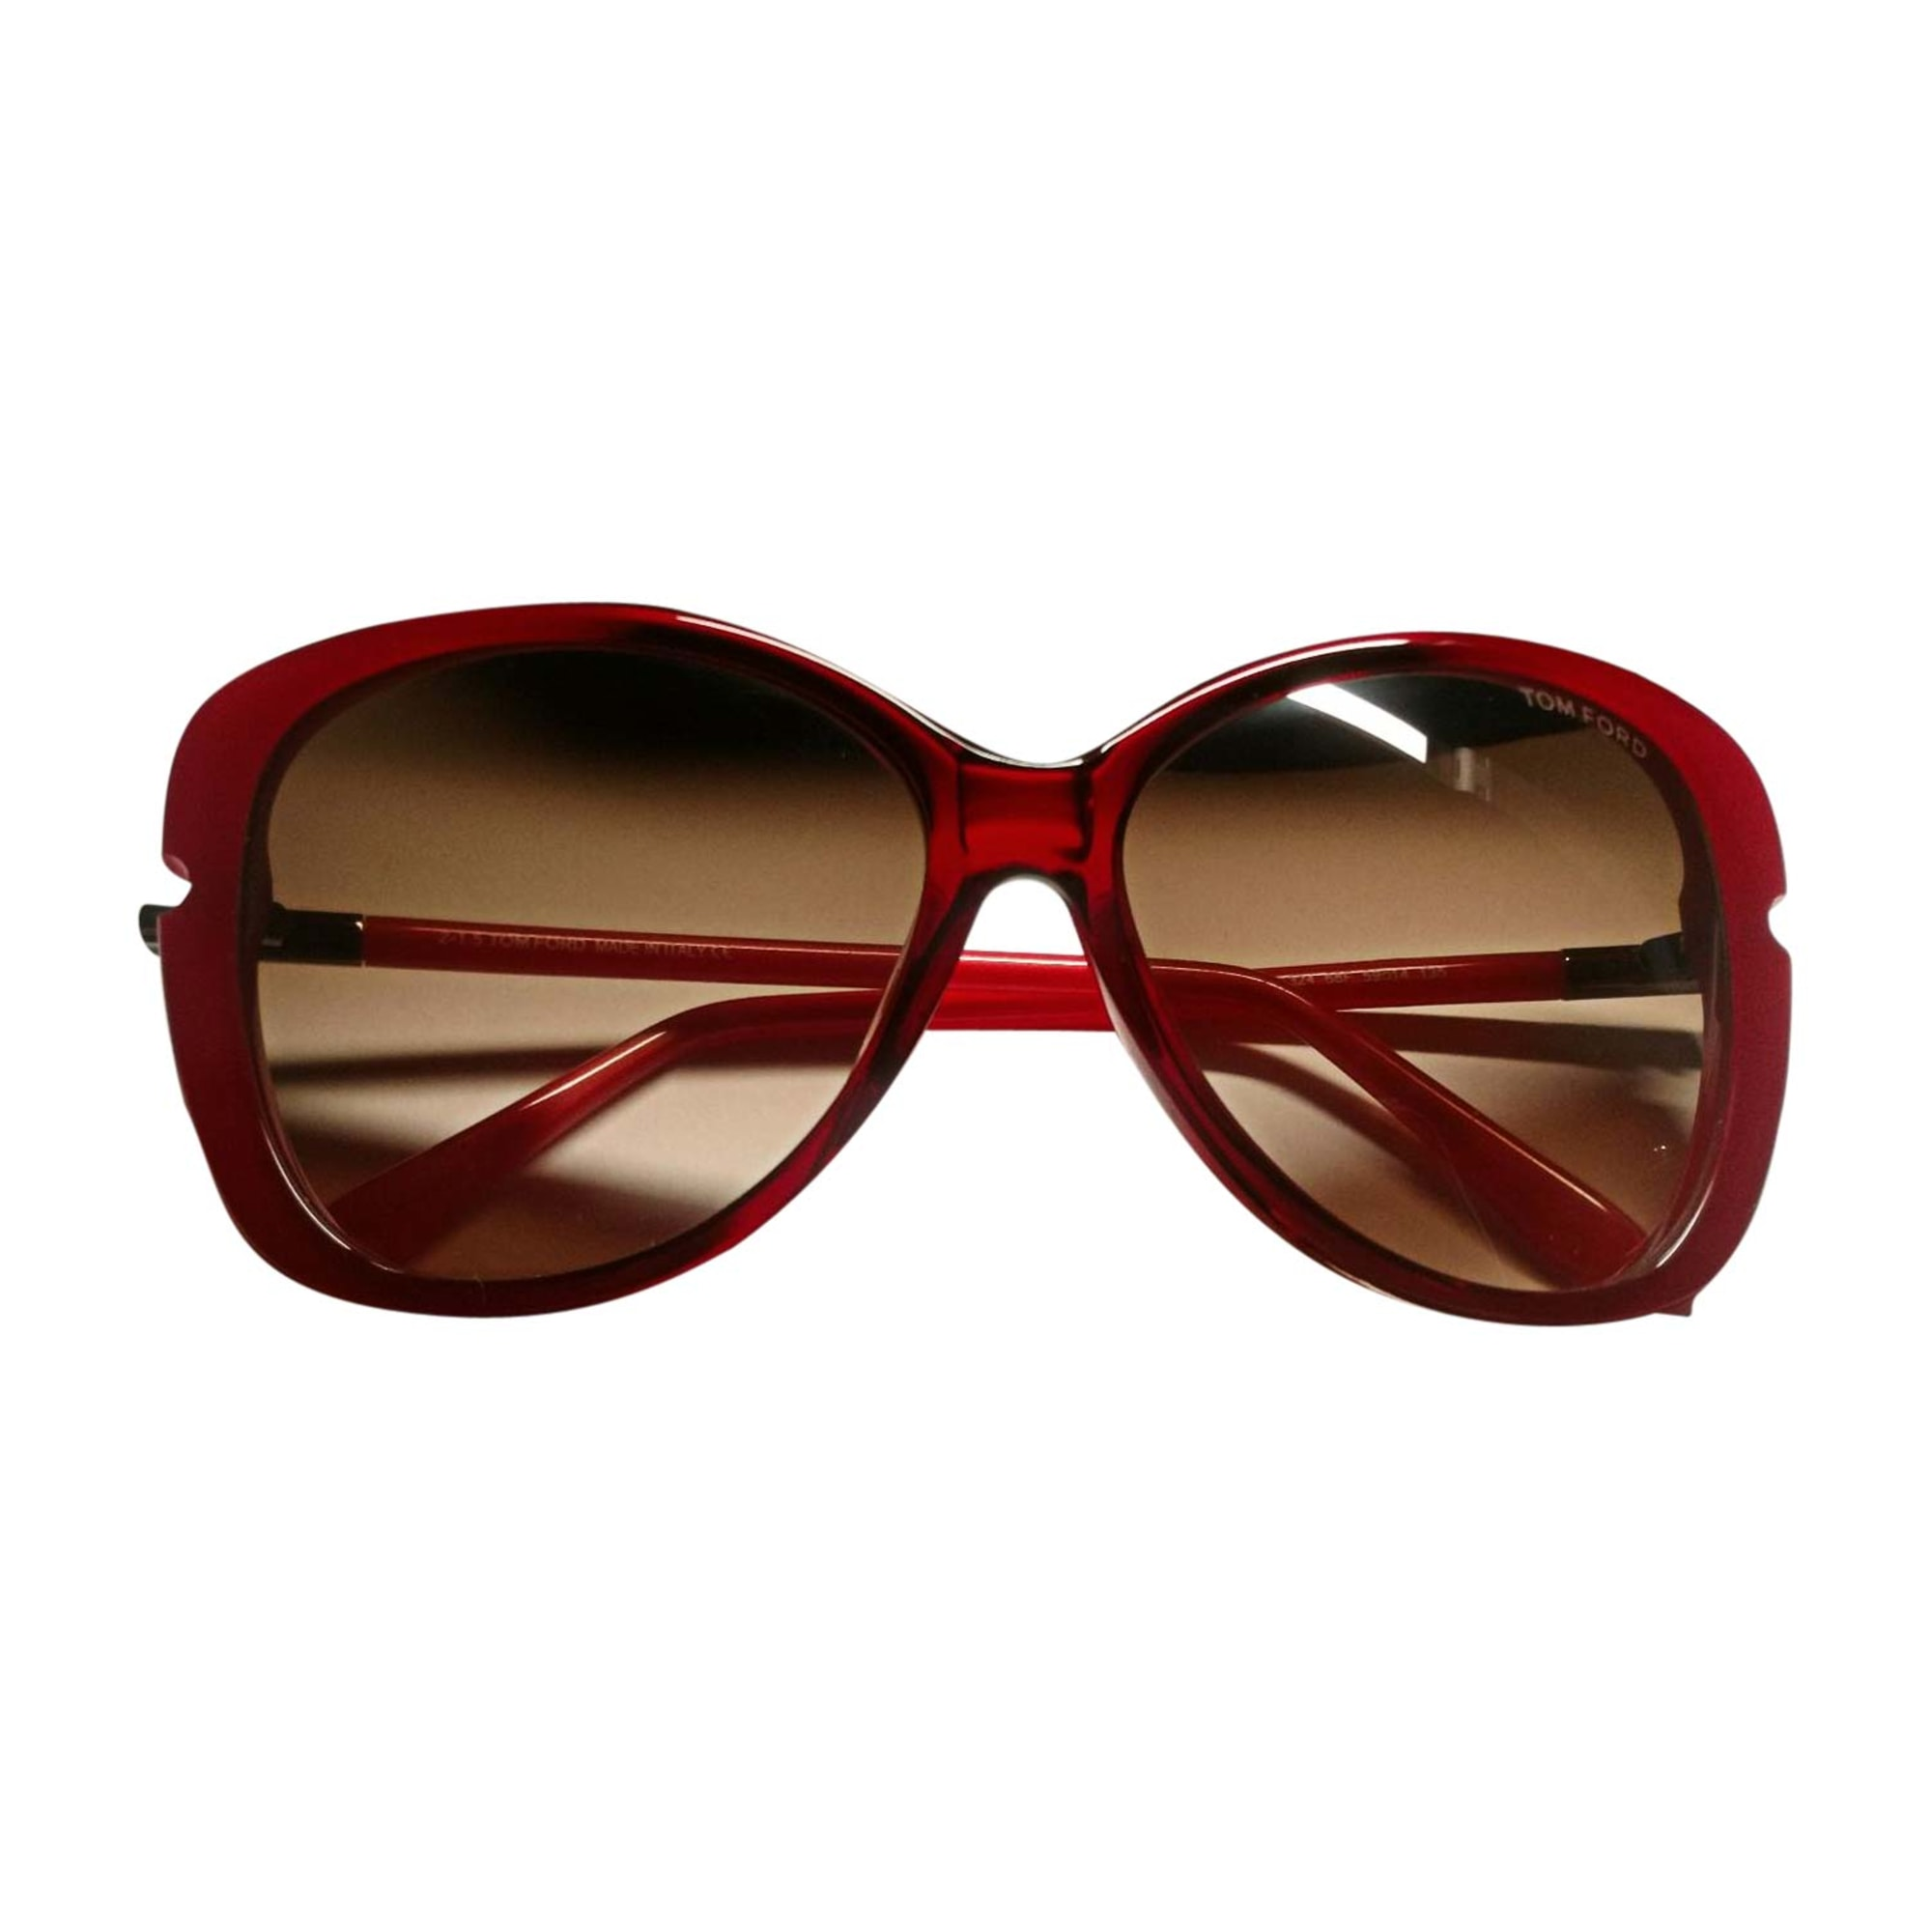 ef1d044482a Sunglasses TOM FORD red - 7730731